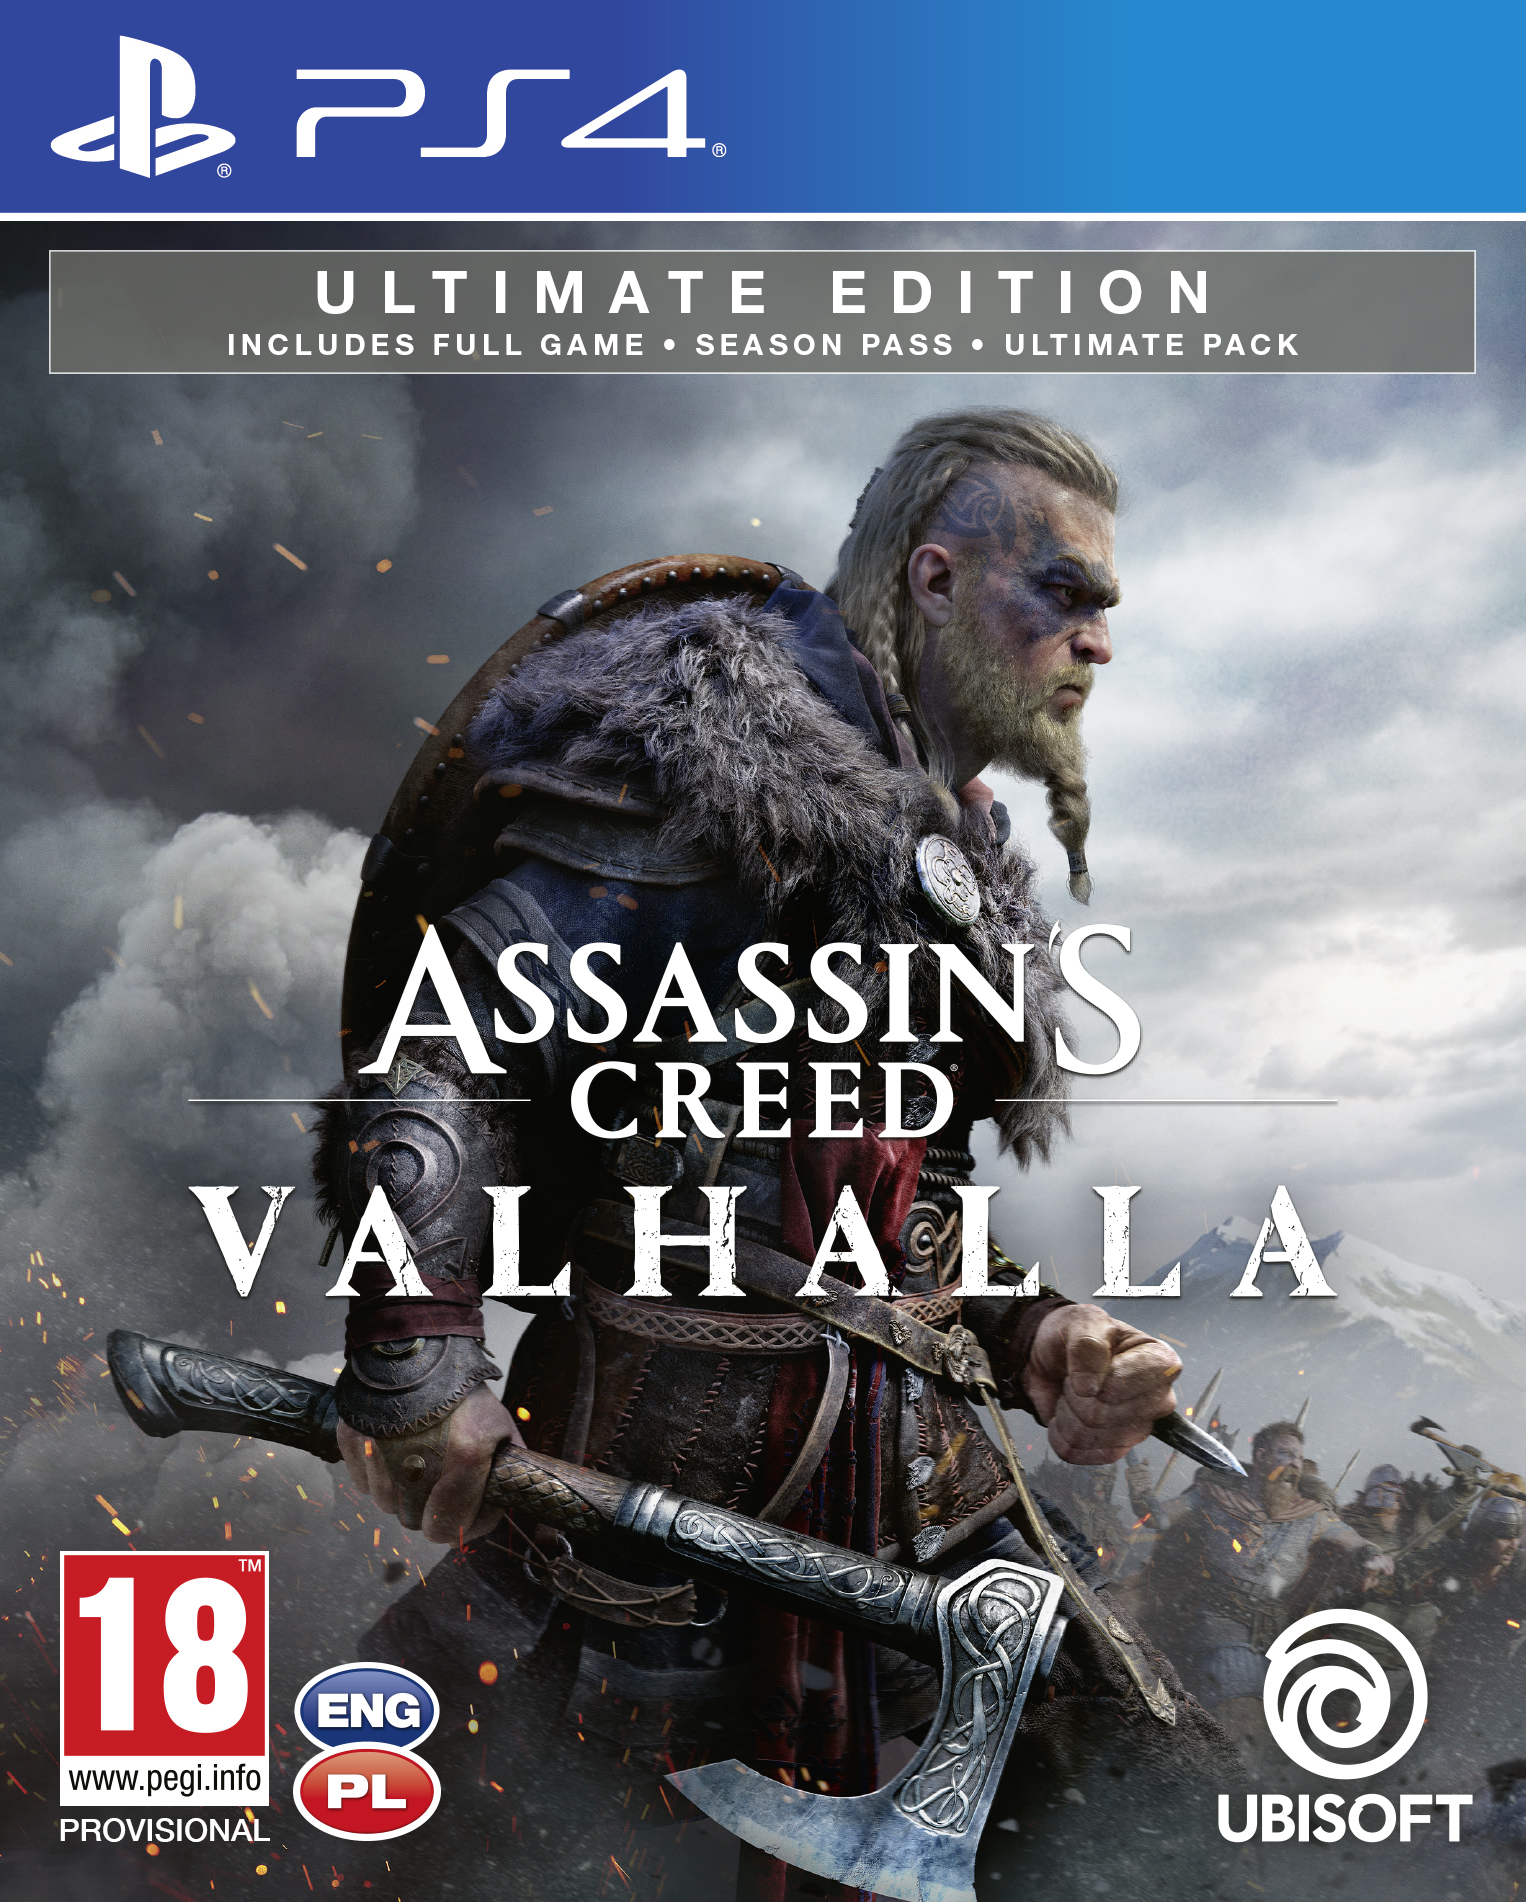 Assassins Creed Valhalla Ultimate Edition